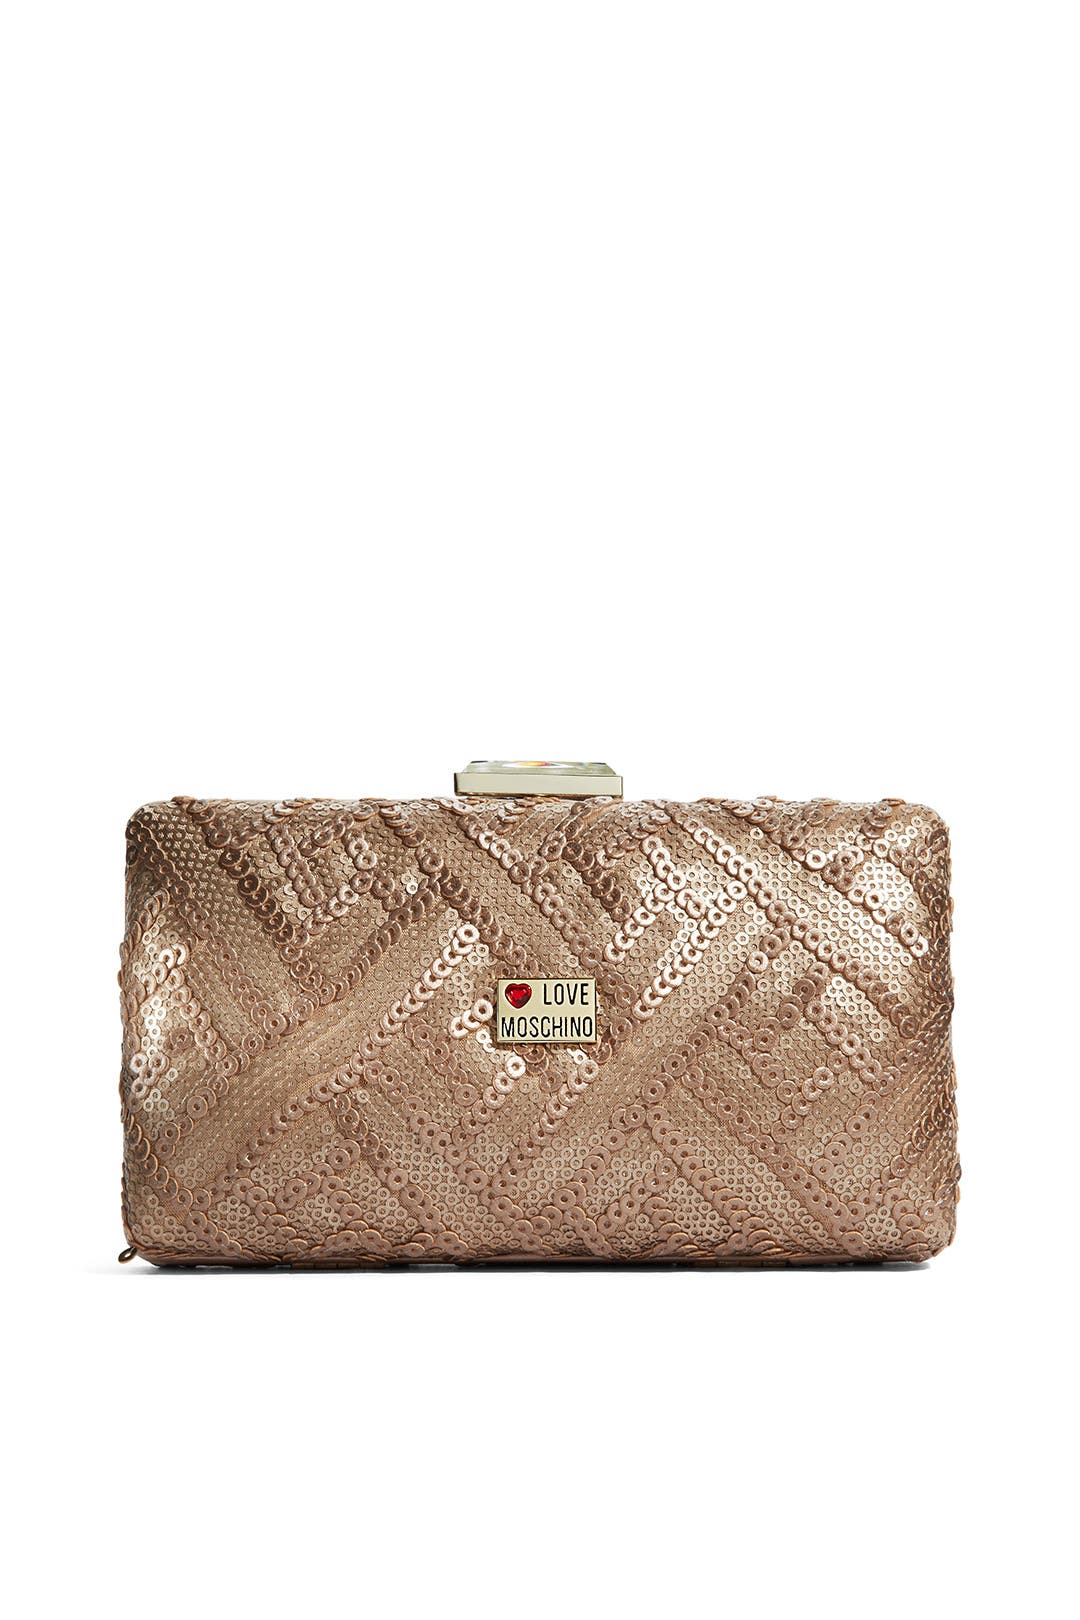 Pink Champagne Clutch by Love Moschino Accessories